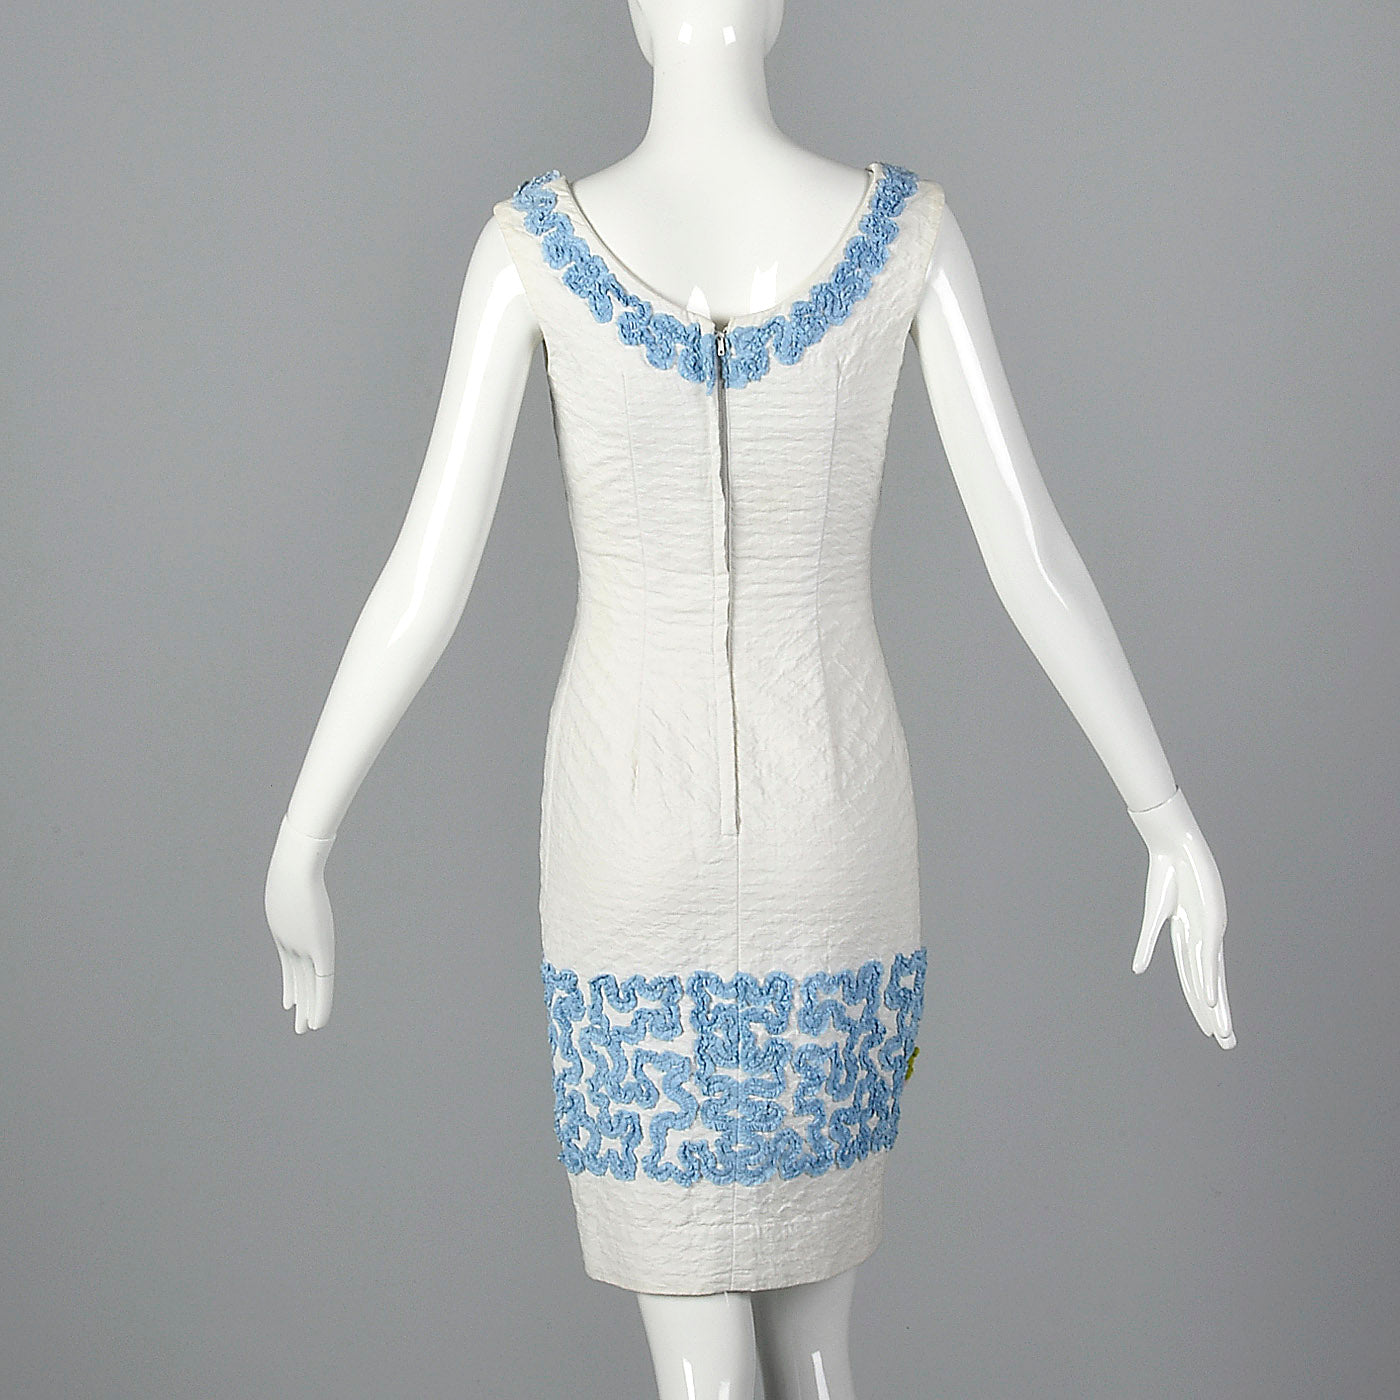 1950s Textured Cotton Dress with Soutache Trim